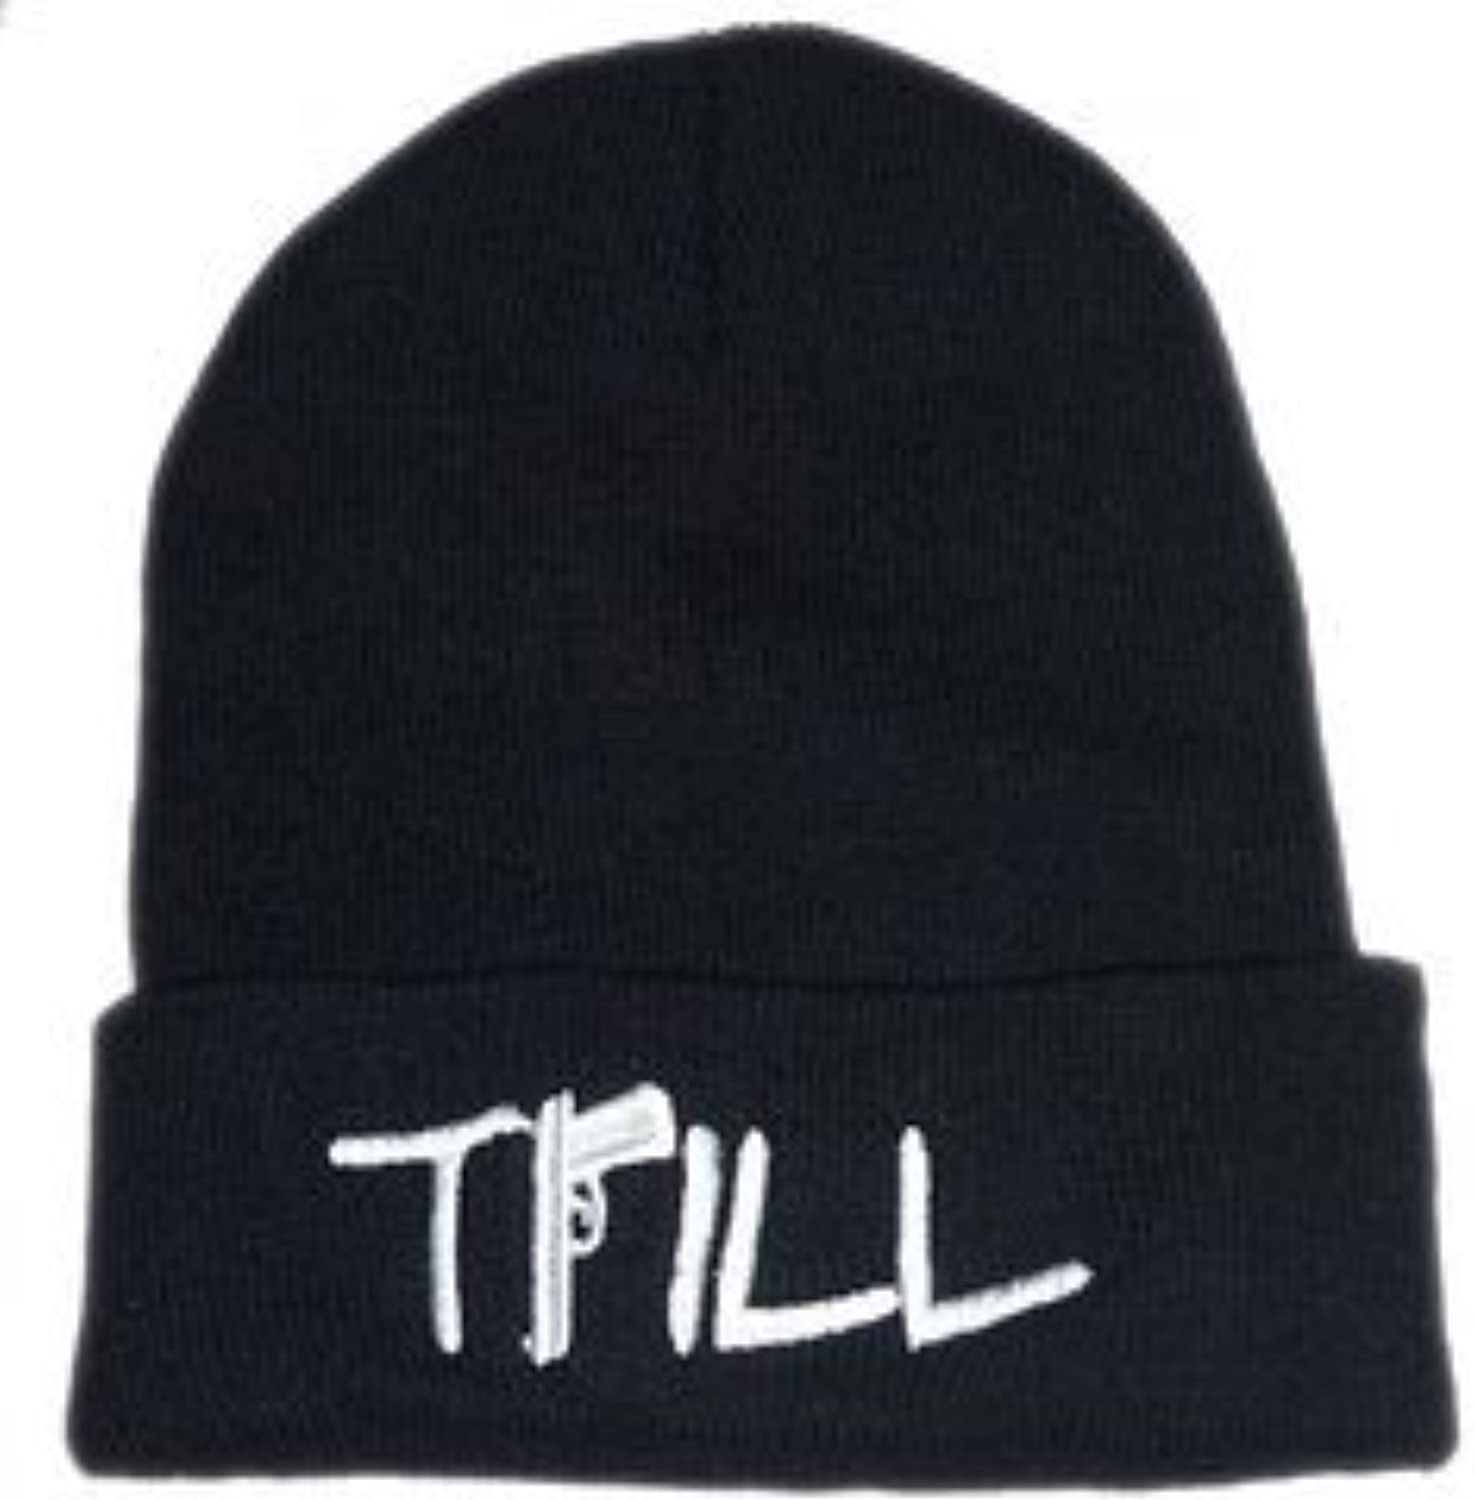 Trill Beanie (Black with White Logo) by Admirable